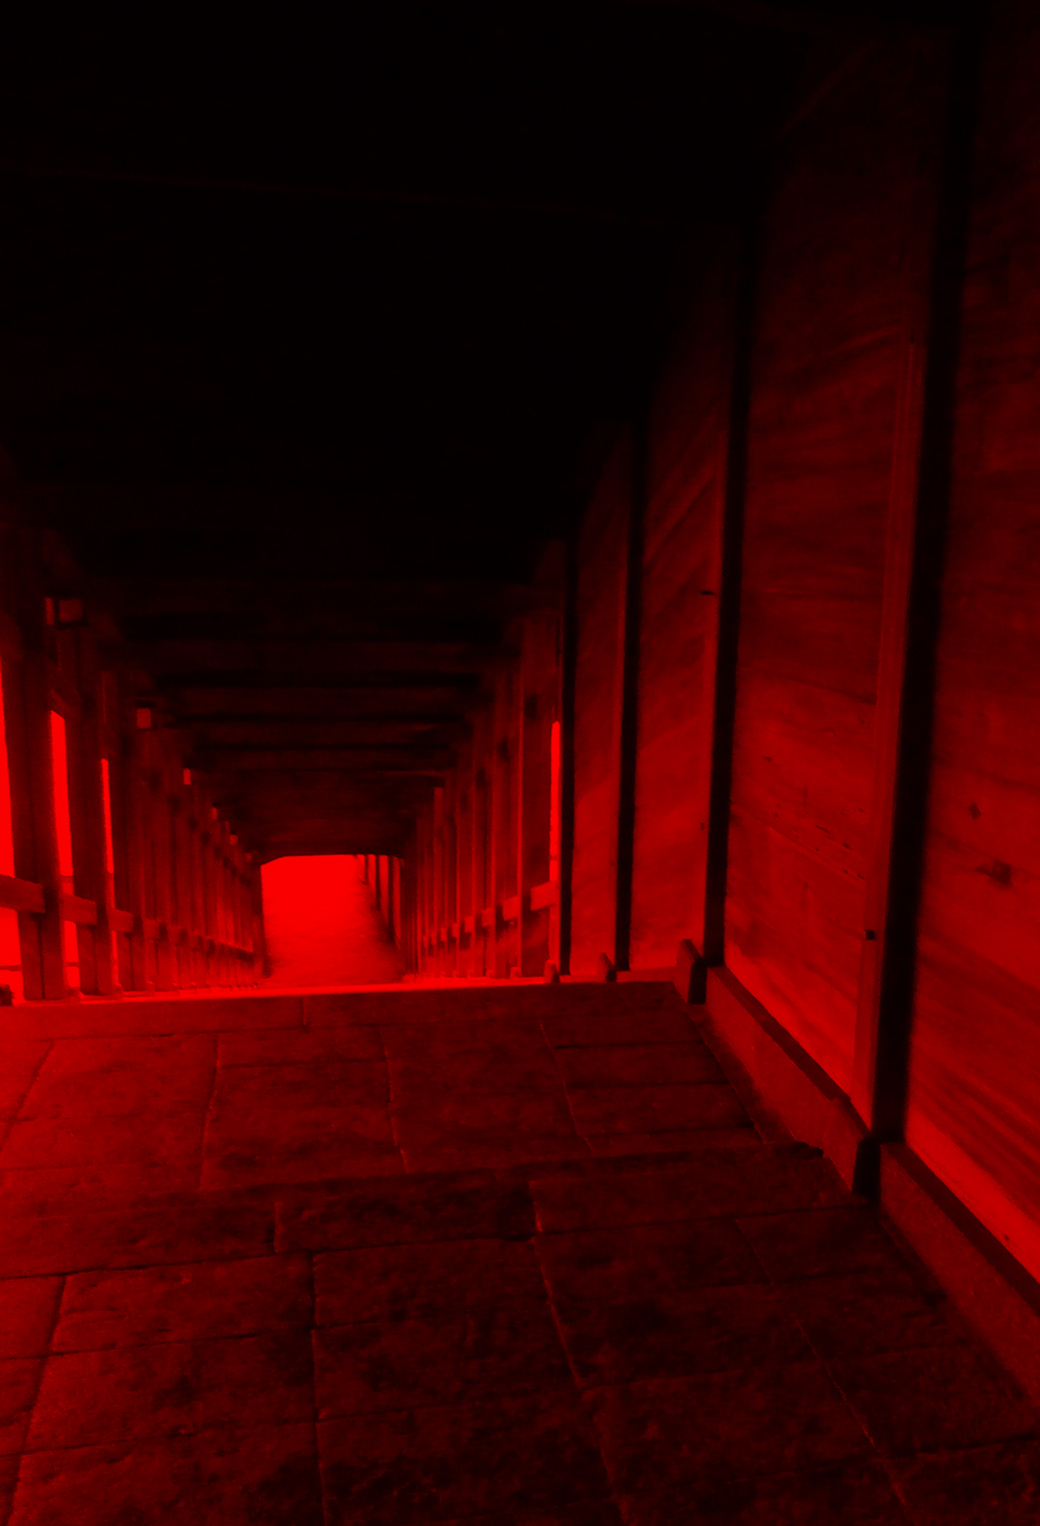 Red Tunnel 3Wallpapers iPhone Parallax Red Tunnel